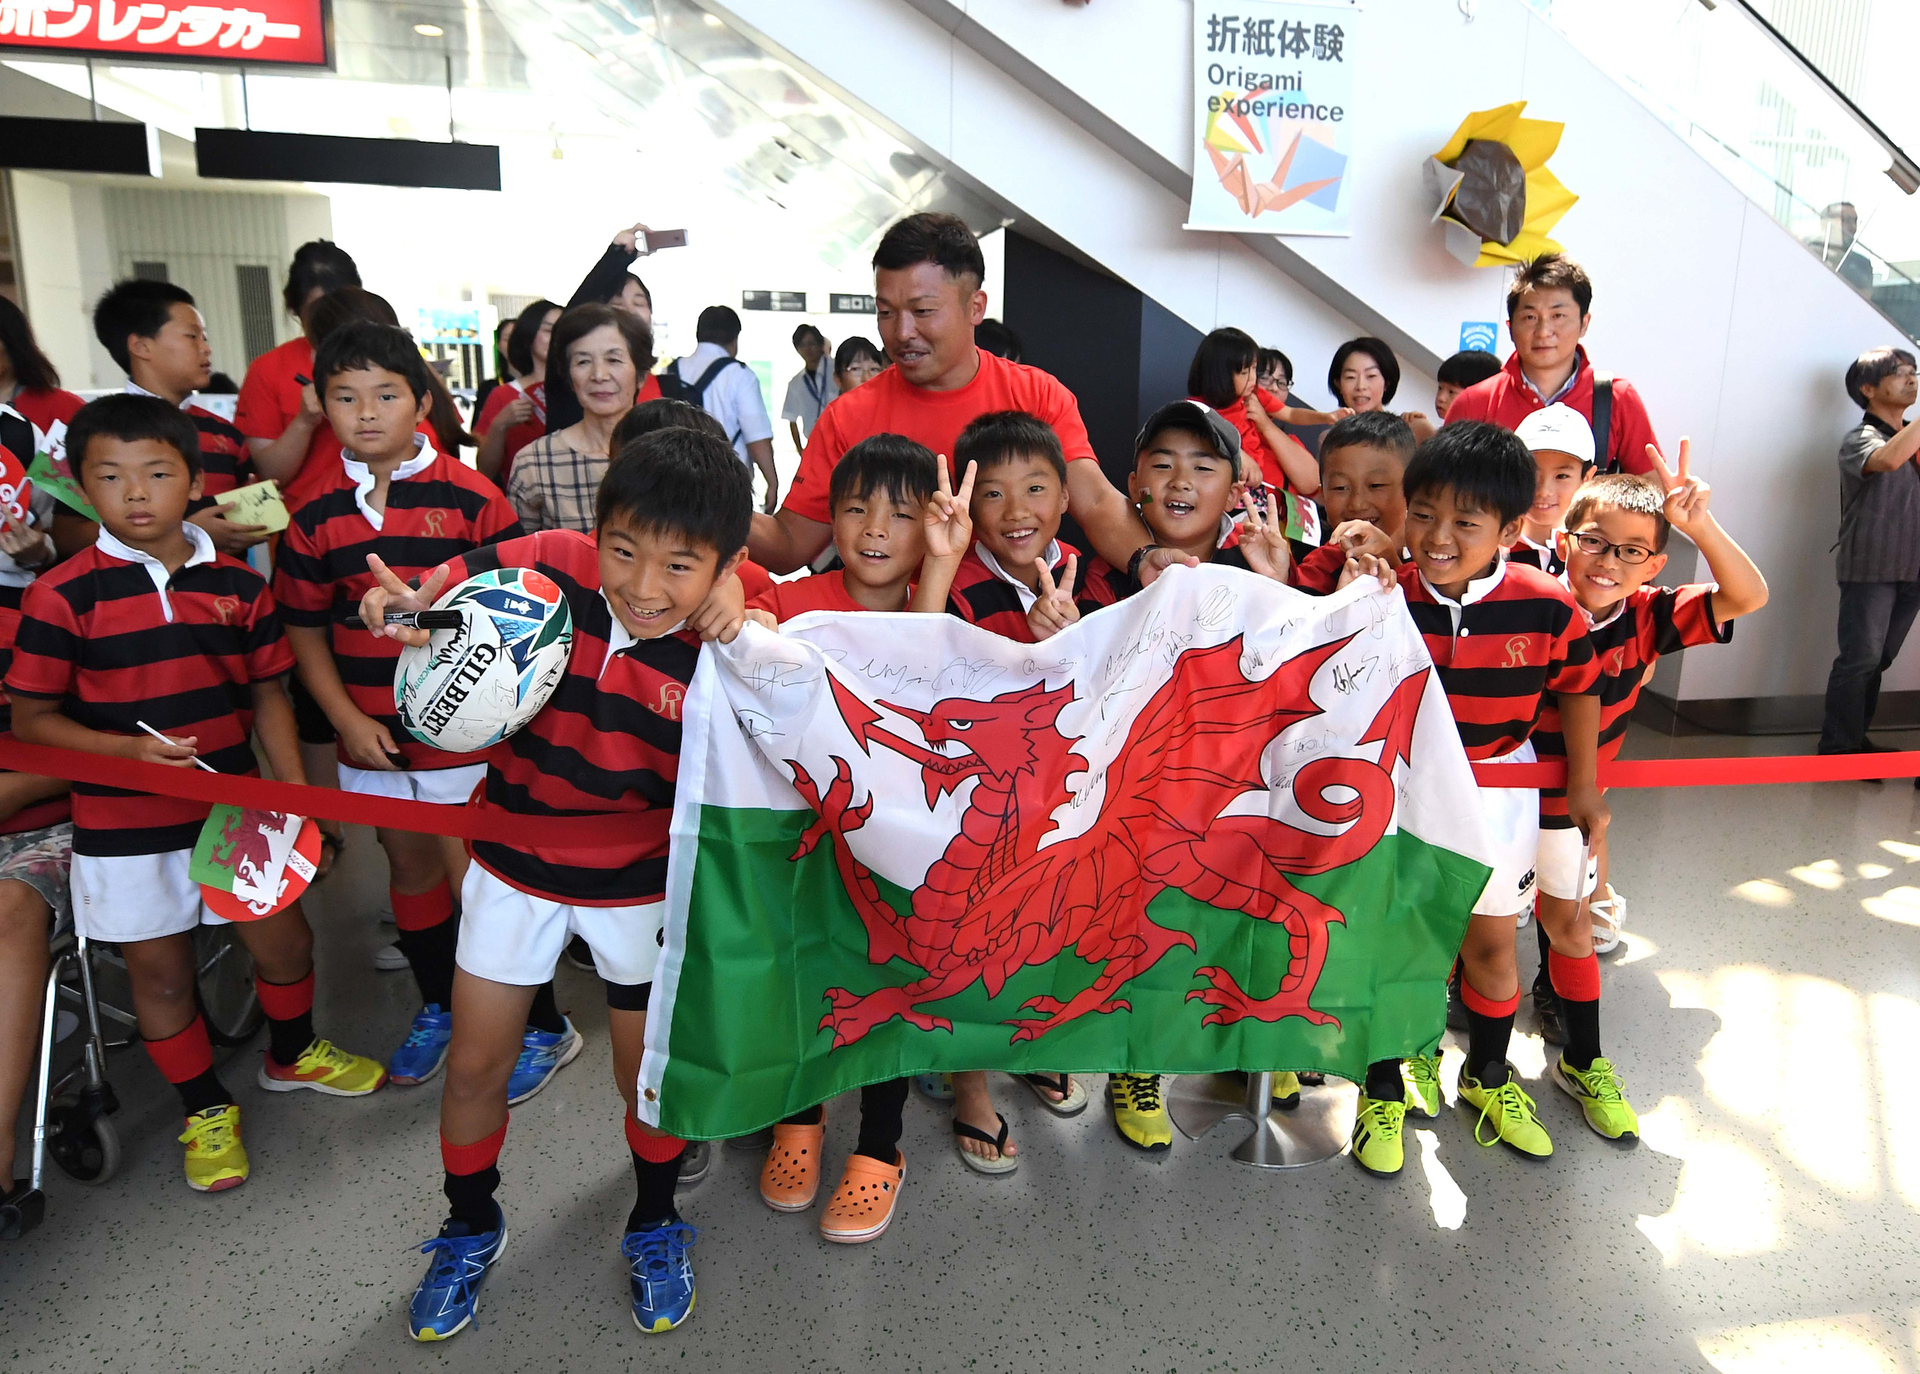 Rugby World Cup 2019: 15,000 fans sing Wales national anthem at training session